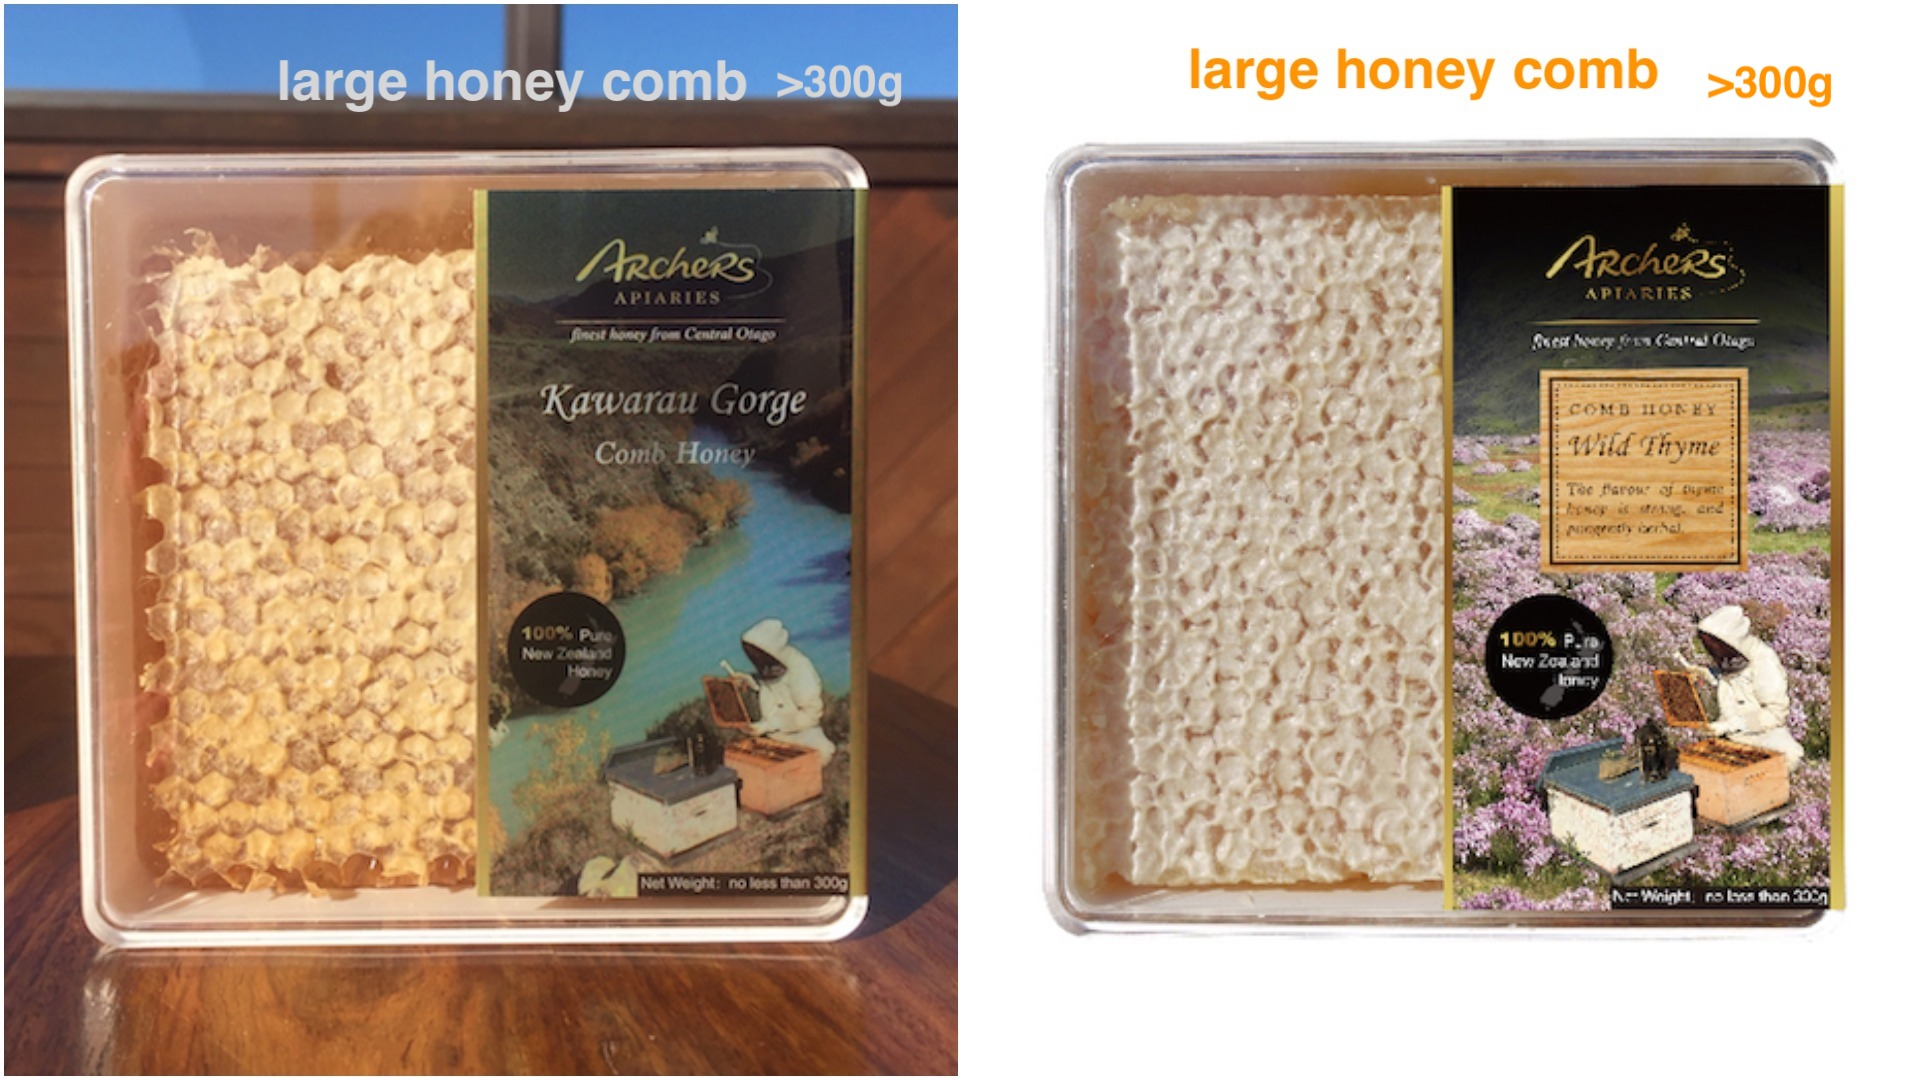 Special - Thyme Large Comb Honey + Kawarau Gorge Large Comb Honey